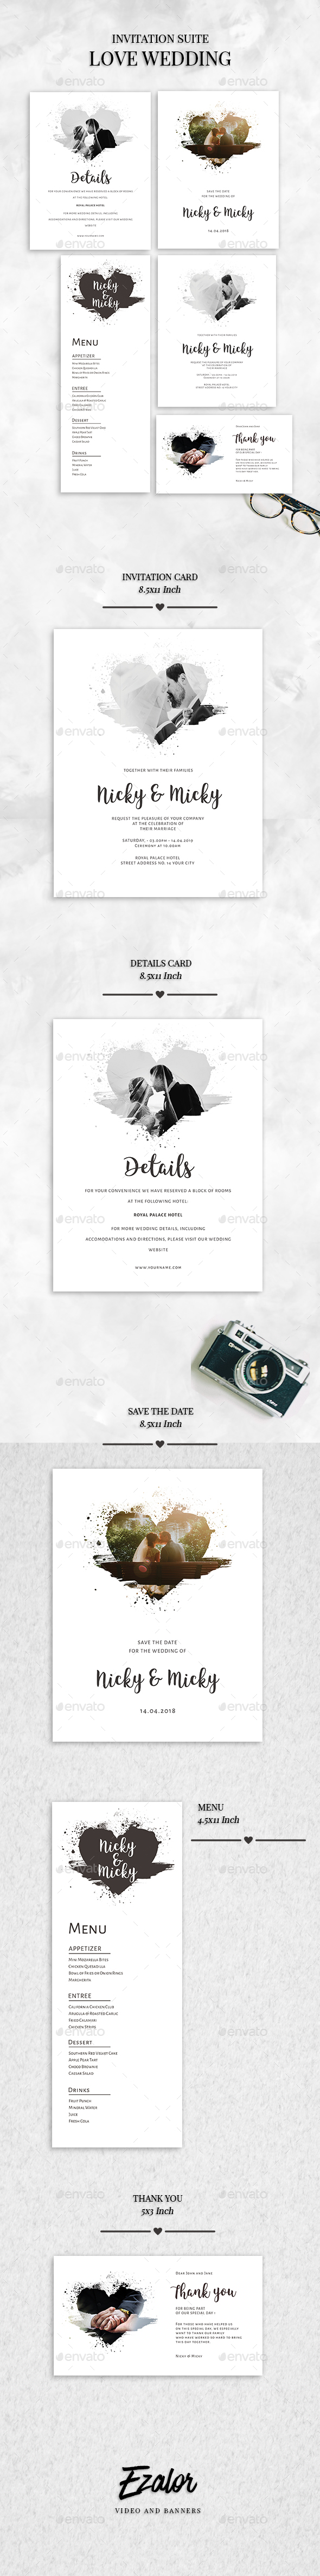 Love Brush Wedding - Weddings Cards & Invites